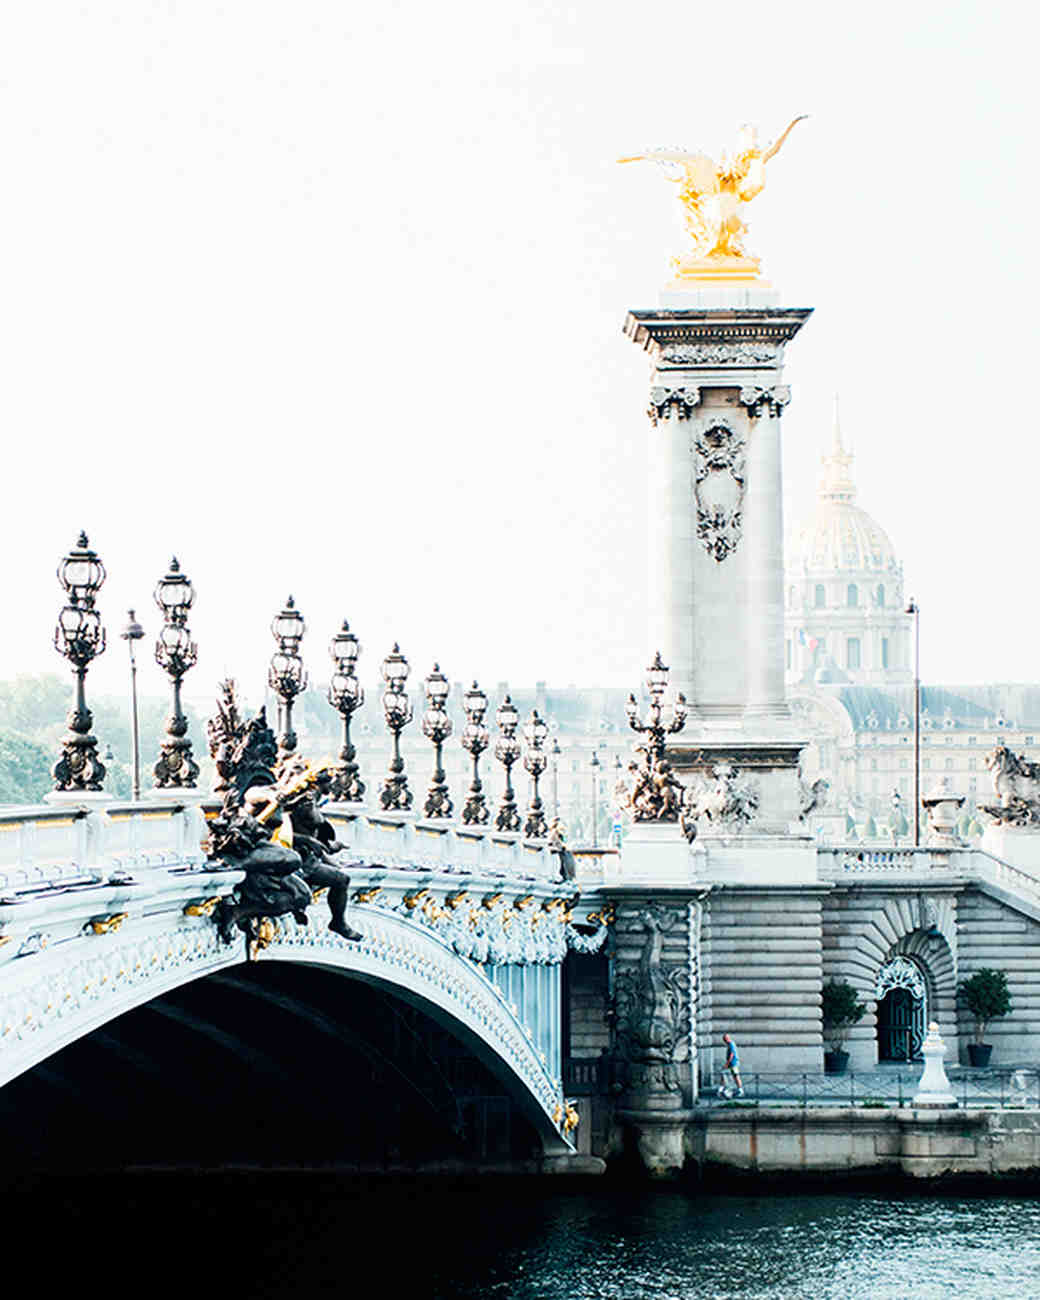 katie-mitchell-photography-where-to-propose-in-paris-pont-alexandre-iii-0815.jpg